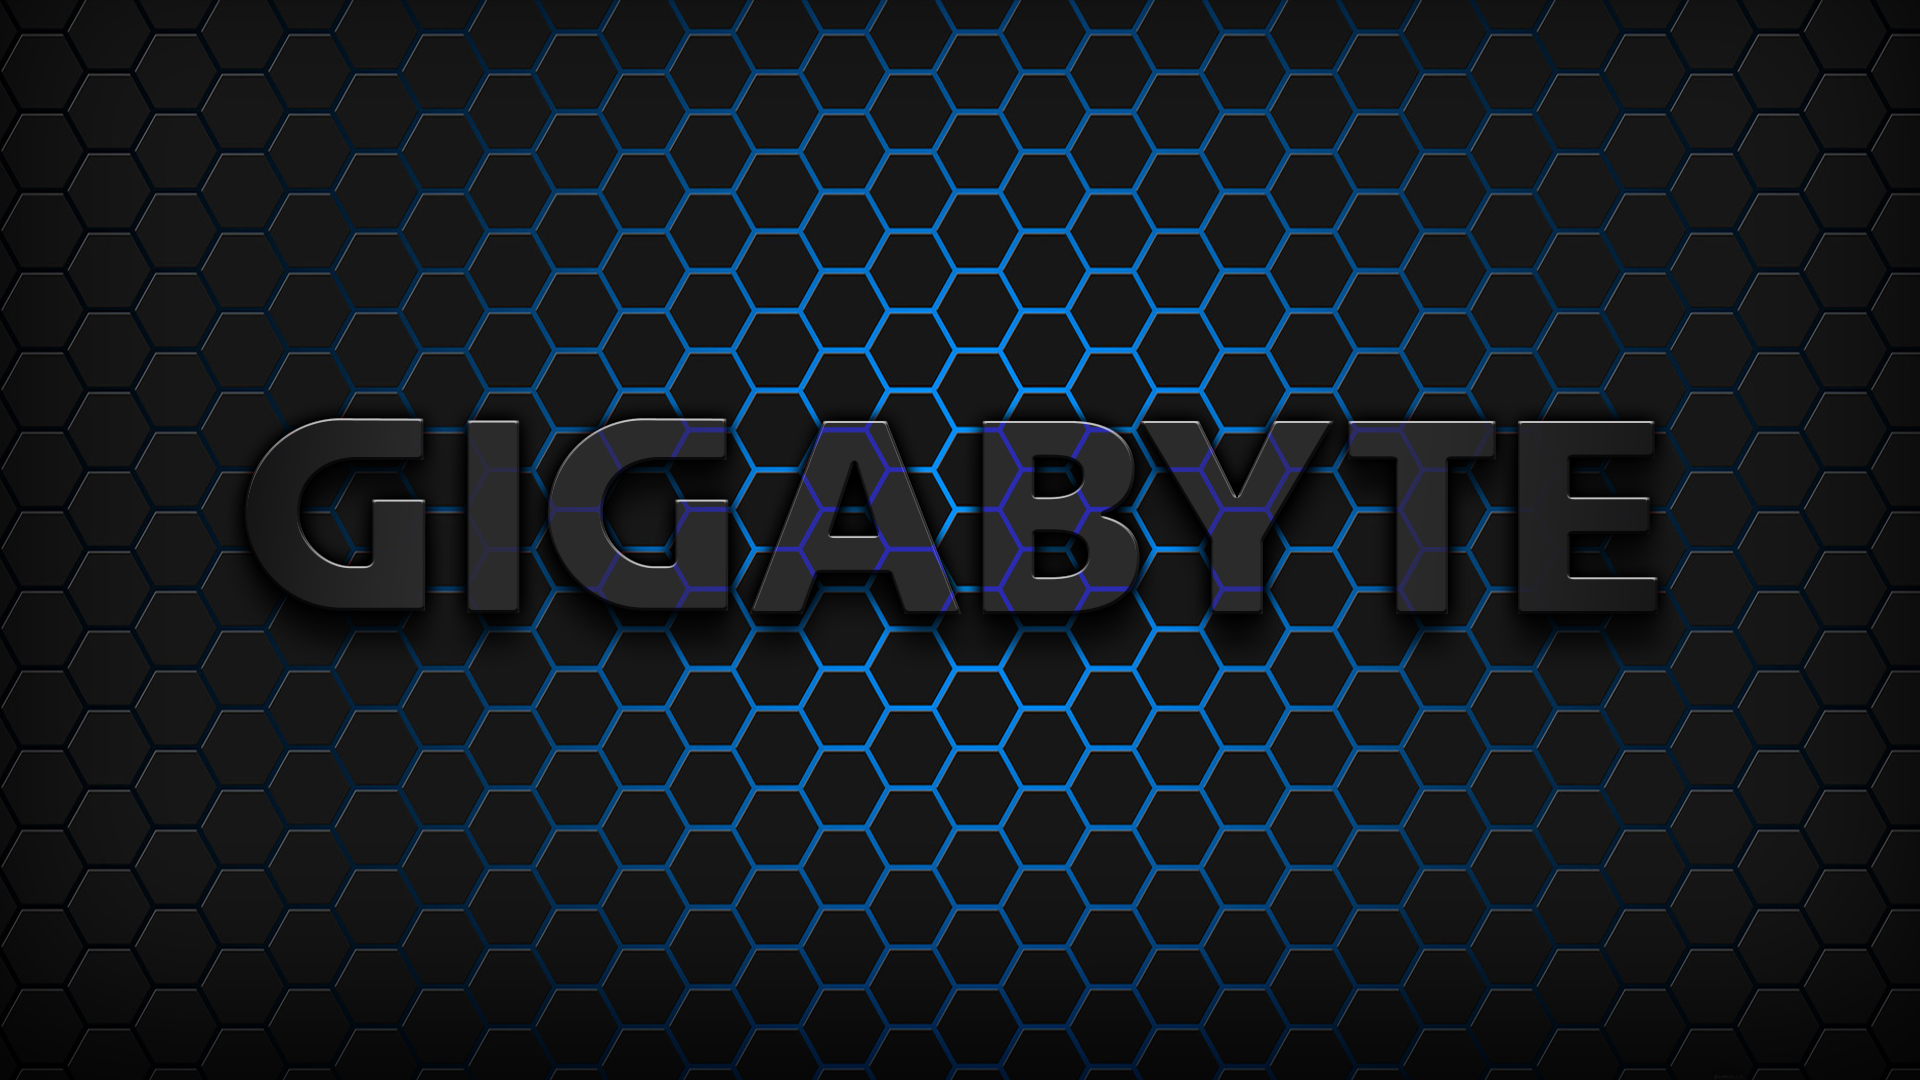 gigabyte motherboards computer wallpapers - photo #6